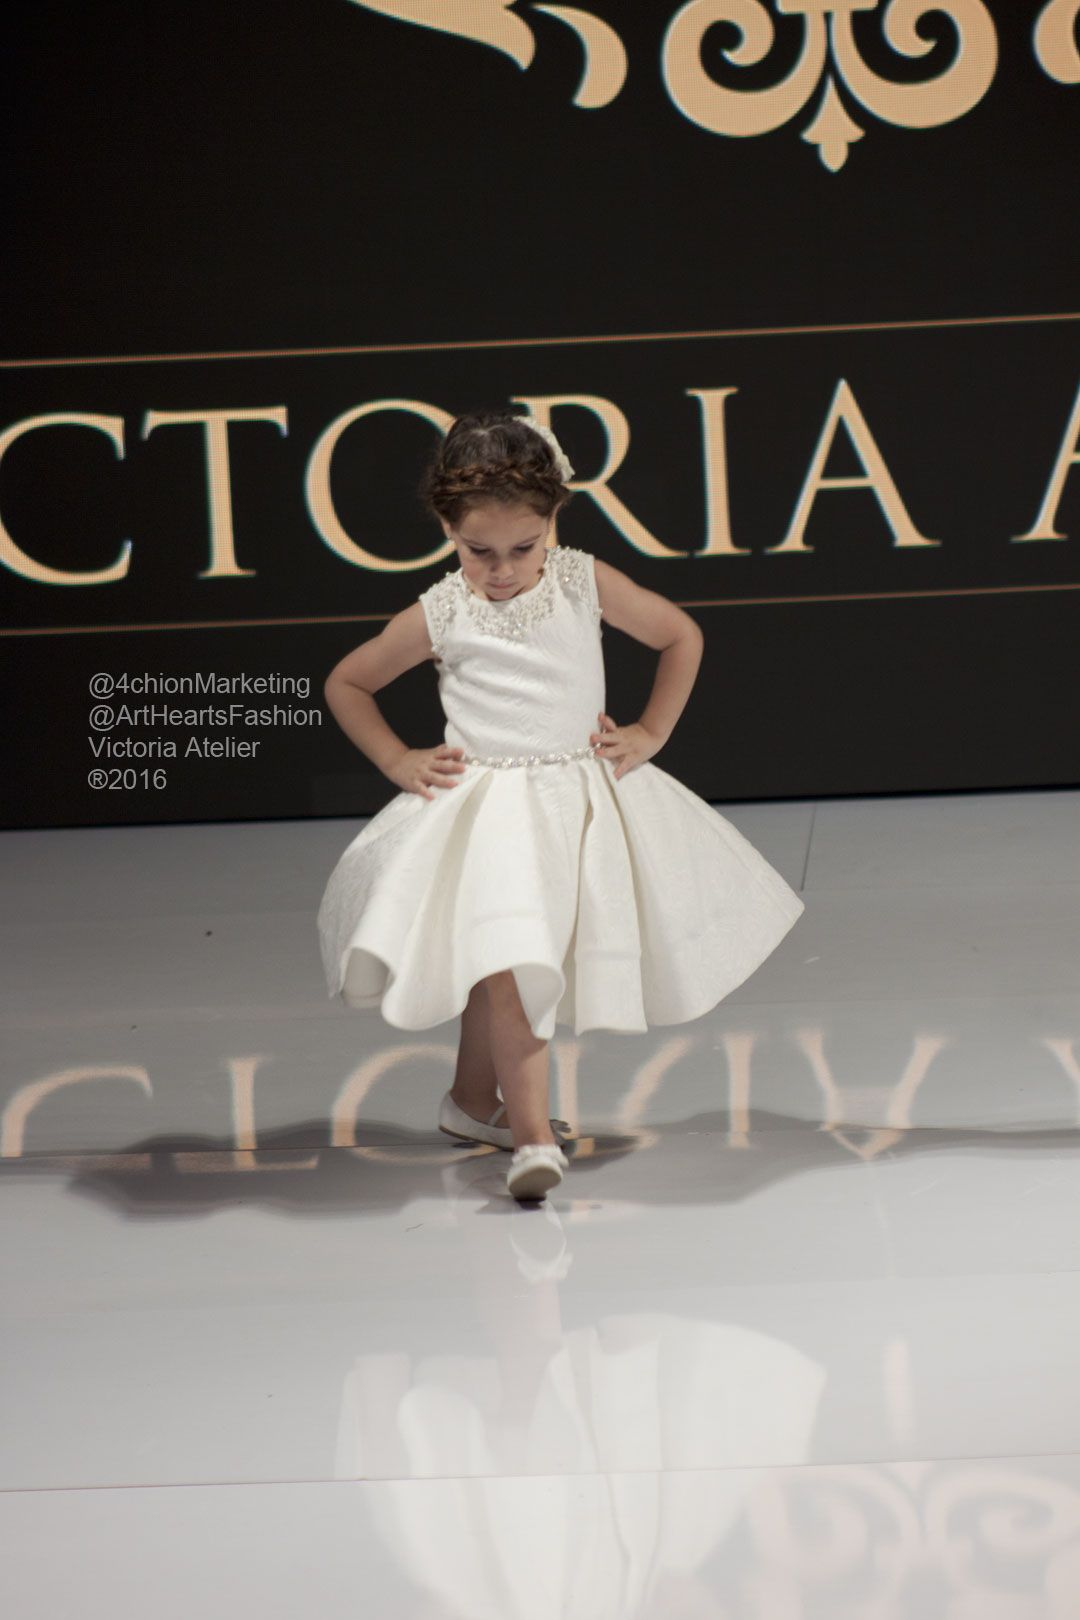 Victoria Atelier‬ at Art Hearts Fashion and  VH1 Save The Music Foundation ‪#‎kidmodel‬ ‪#‎kidfashion‬ ‪#‎clothing‬ ‪#‎runway‬ ‪#‎LAFW‬